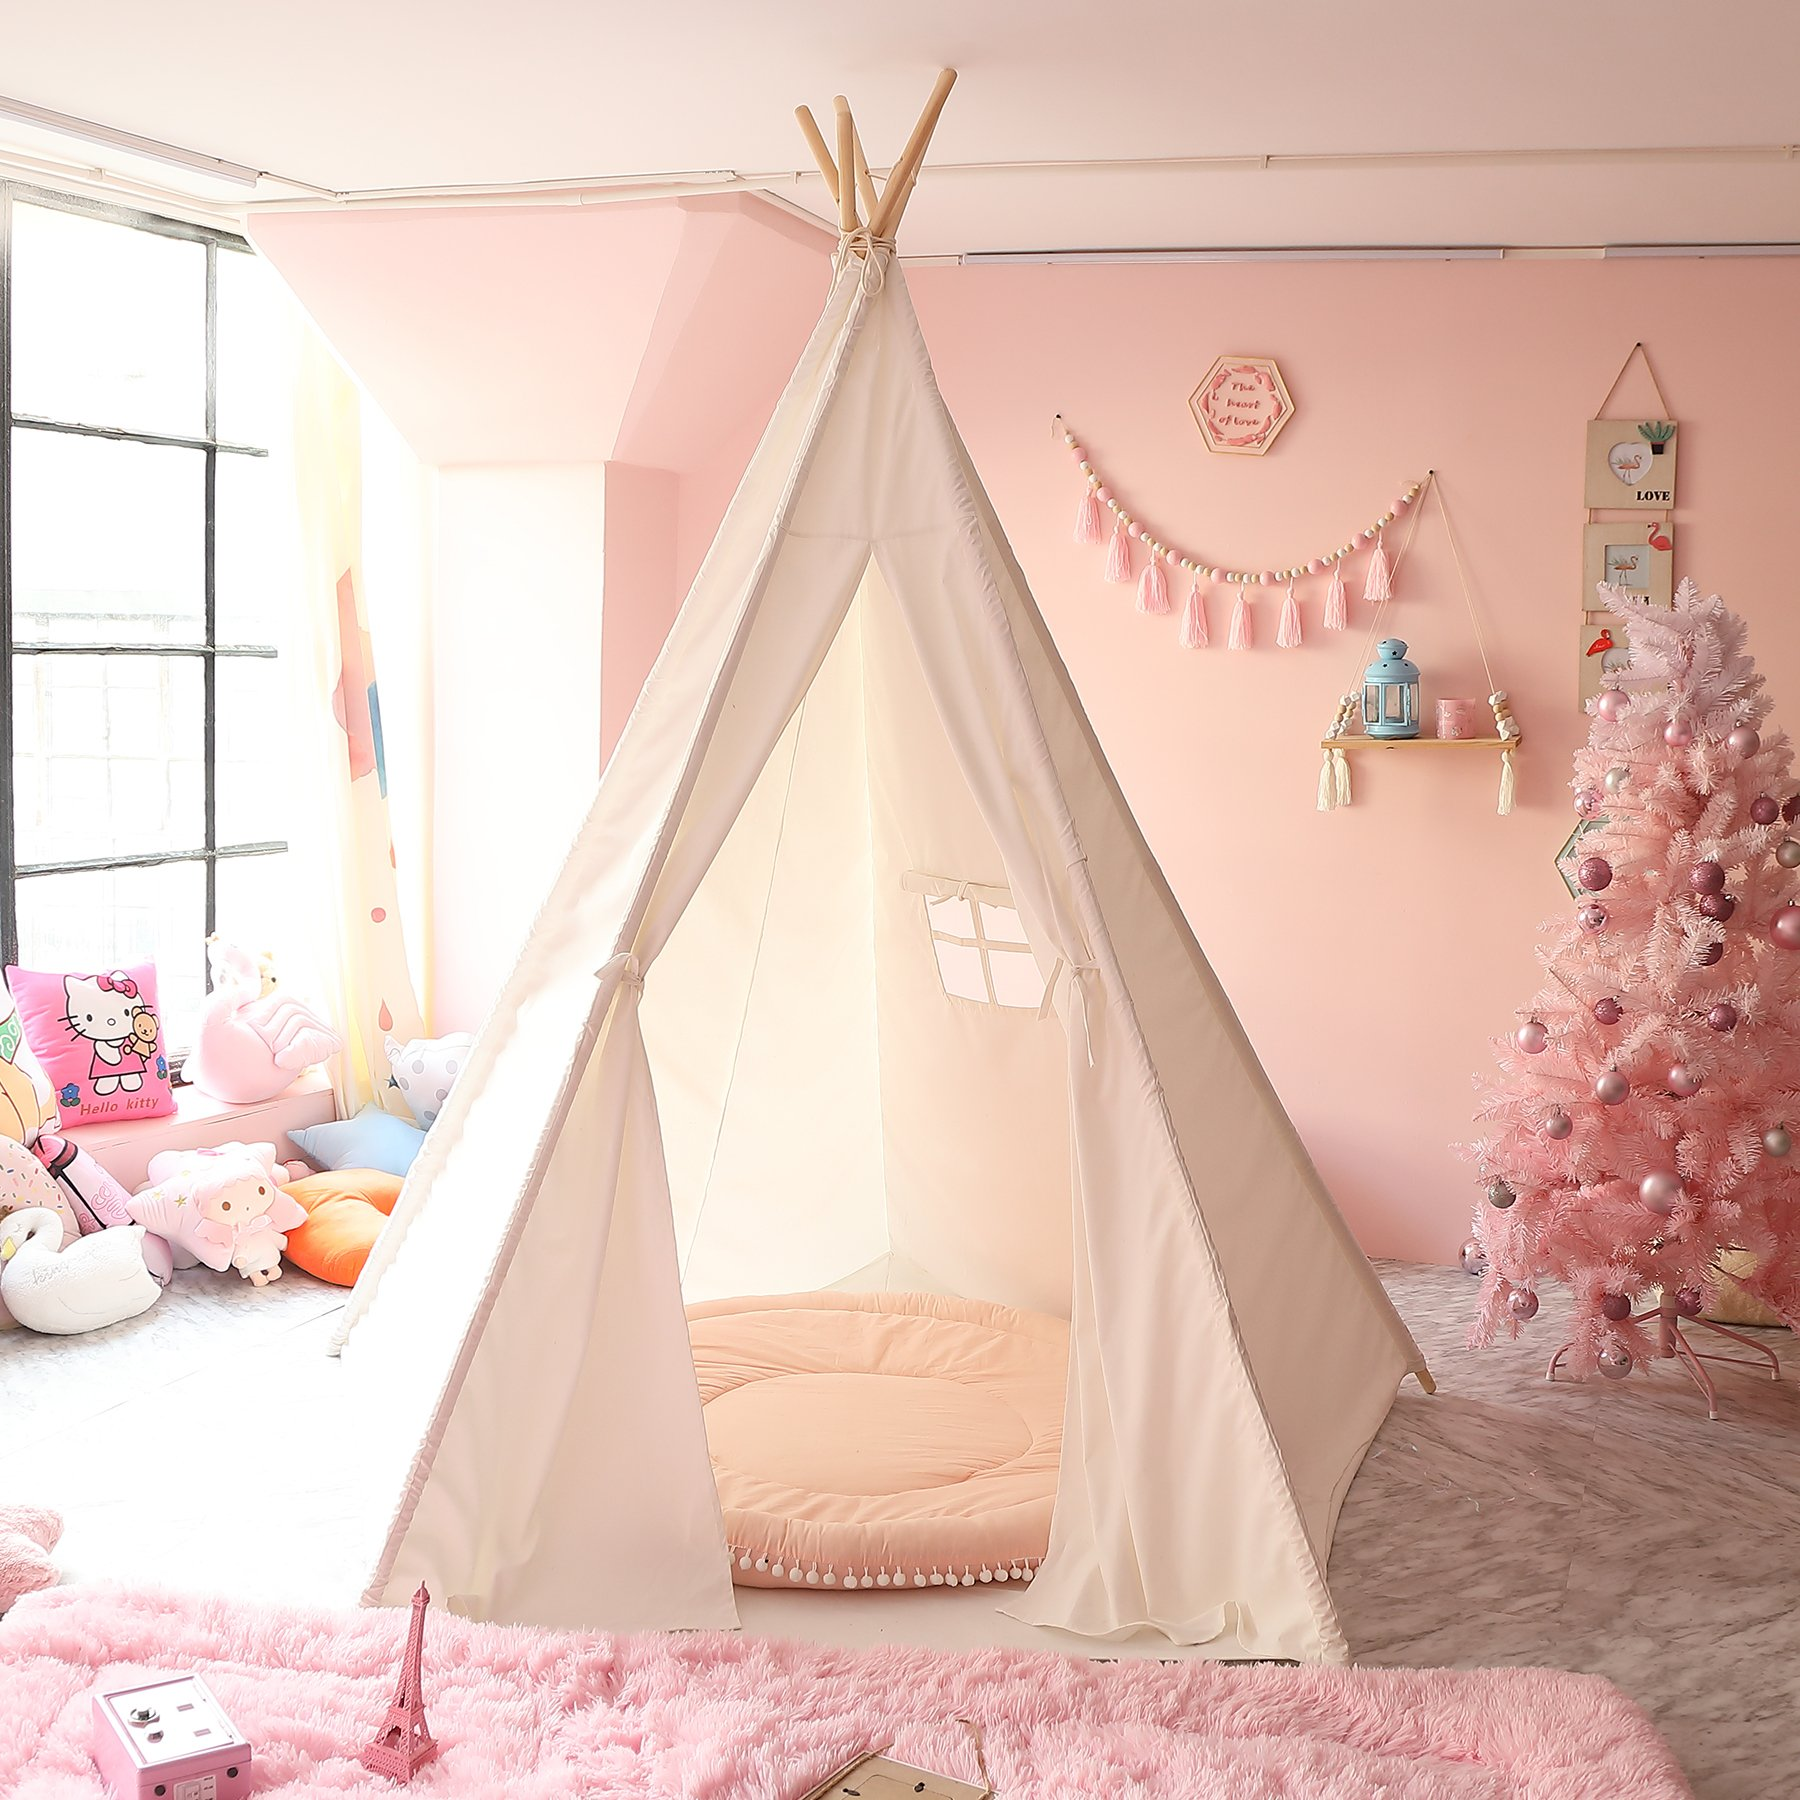 CO-Z Teepee Play Tent Foldable for Kids with Banners - Super Large, for at Least 2 Children - CPST Certificated (5 Poles - 85 Inches Height - Tarp Bottom) by CO-Z